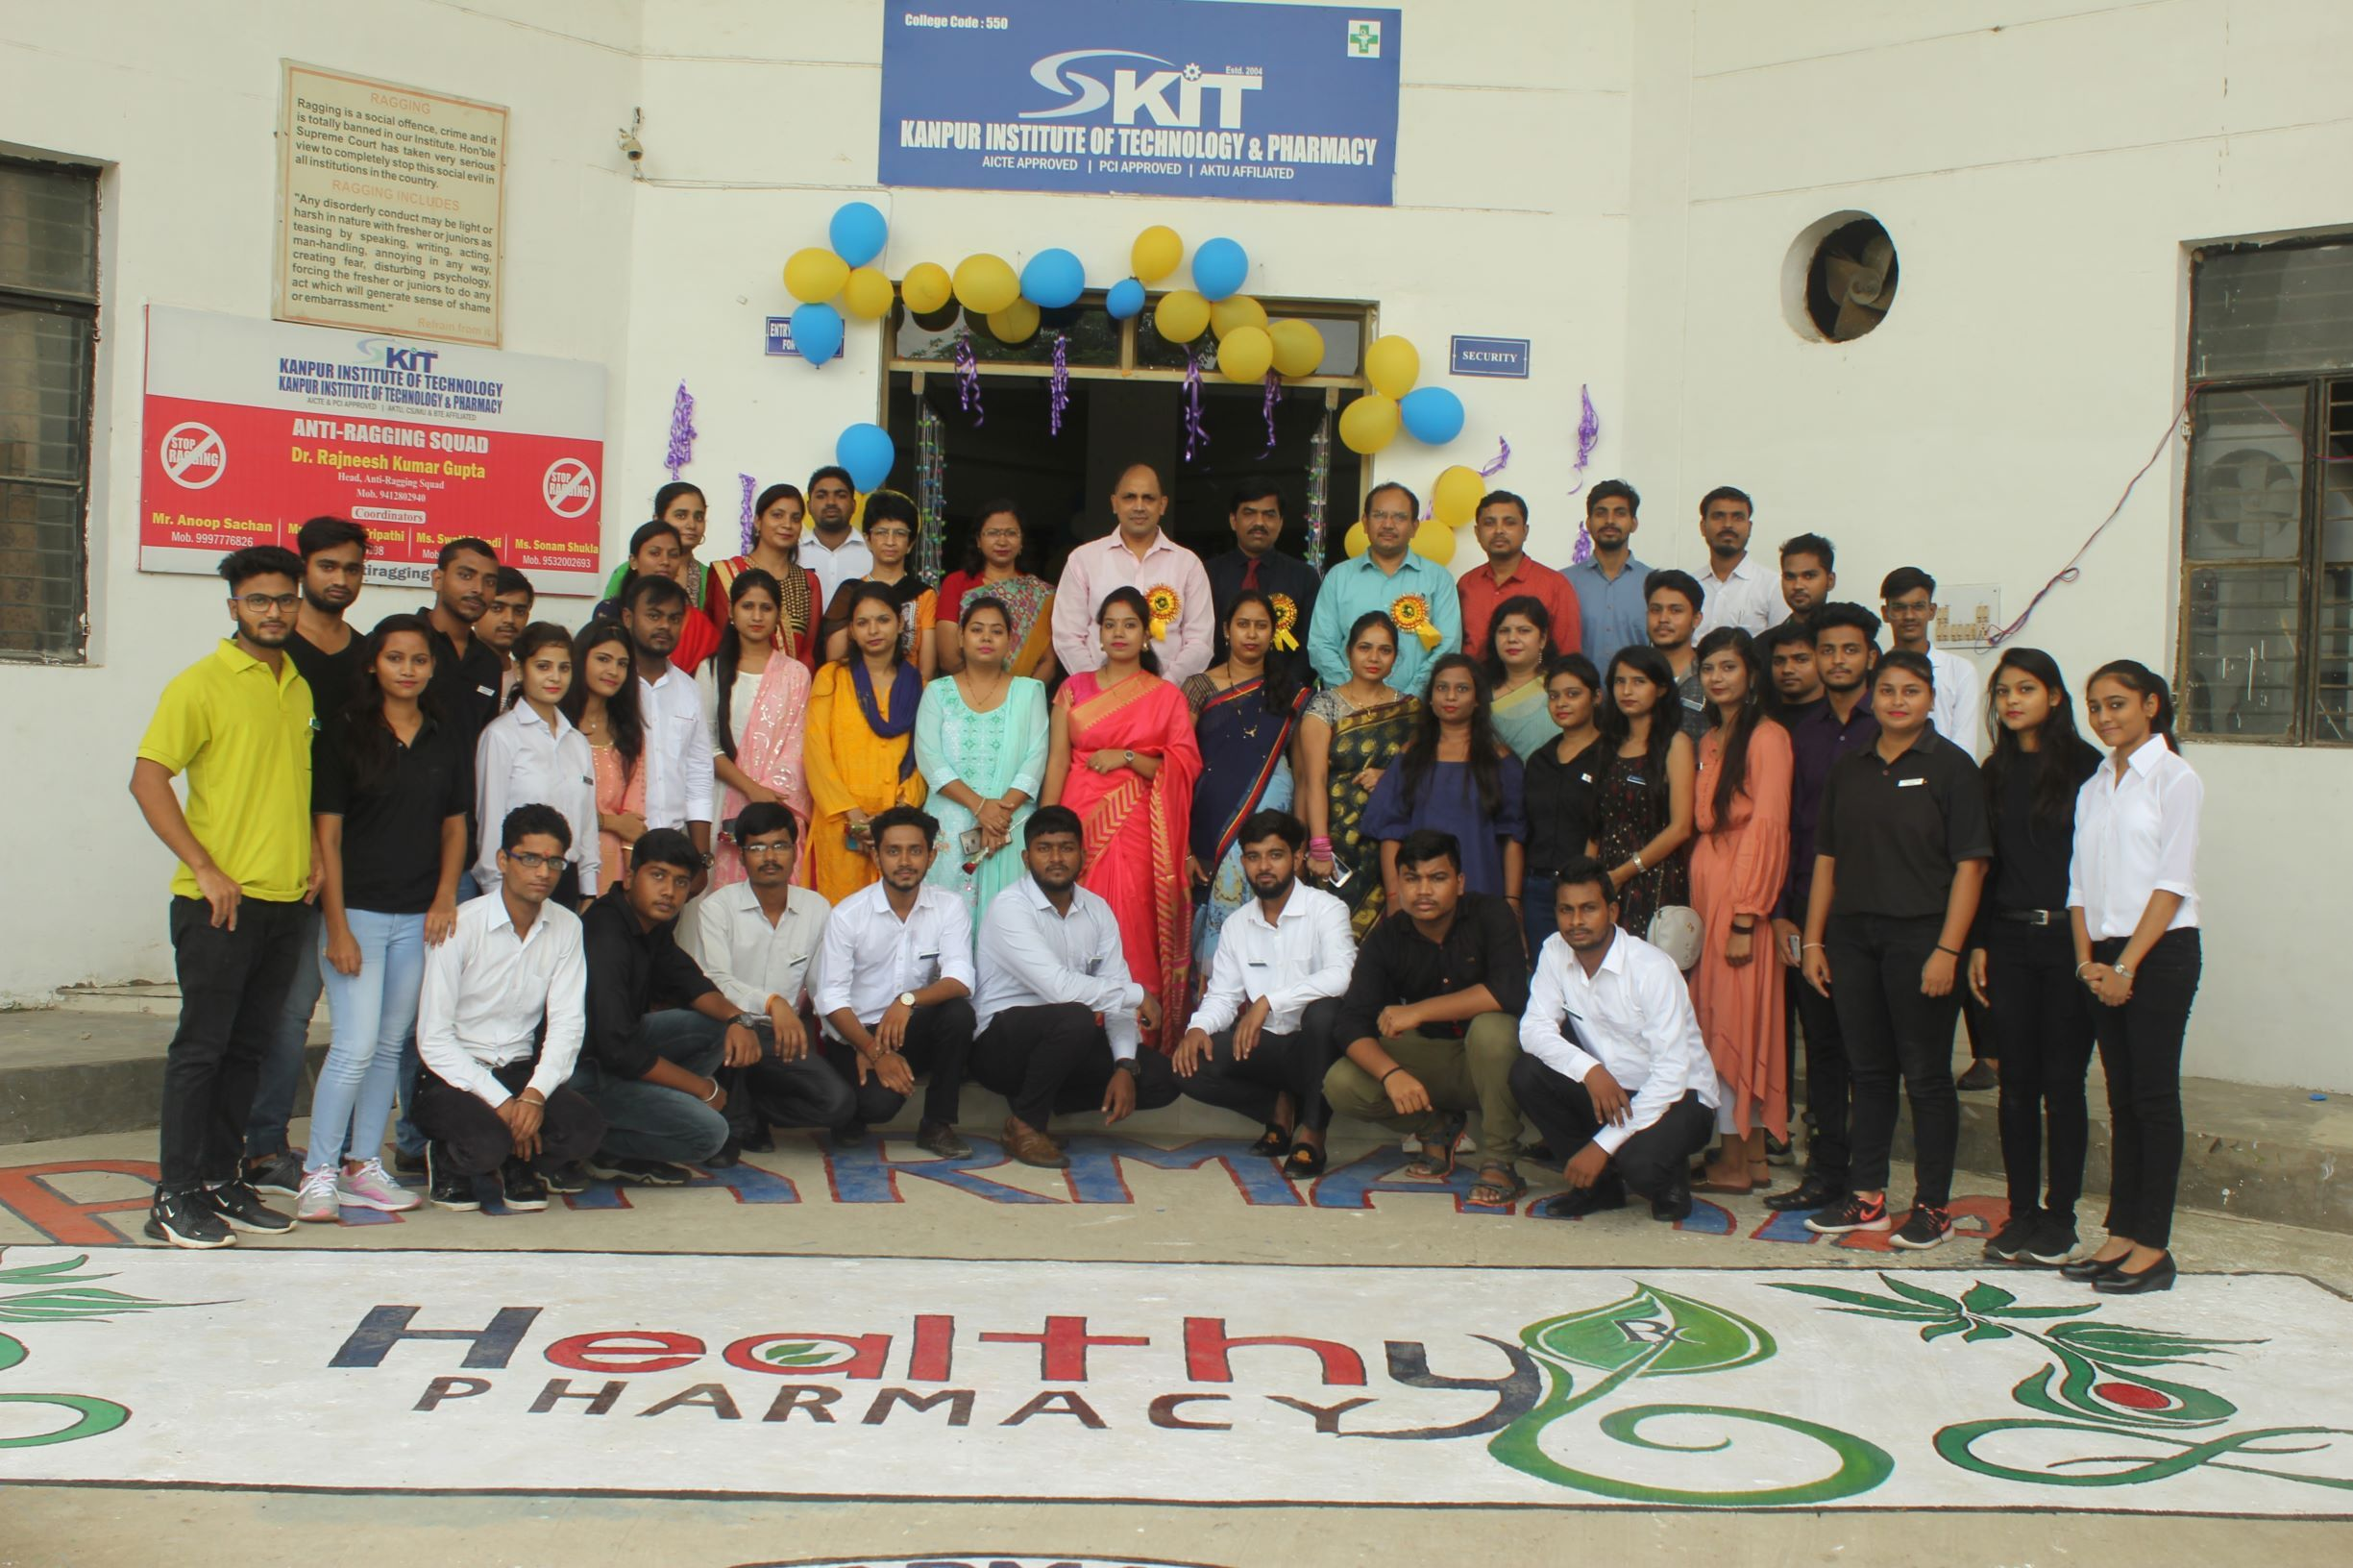 Kanpur Institute of Technology and Pharmacy celebrated